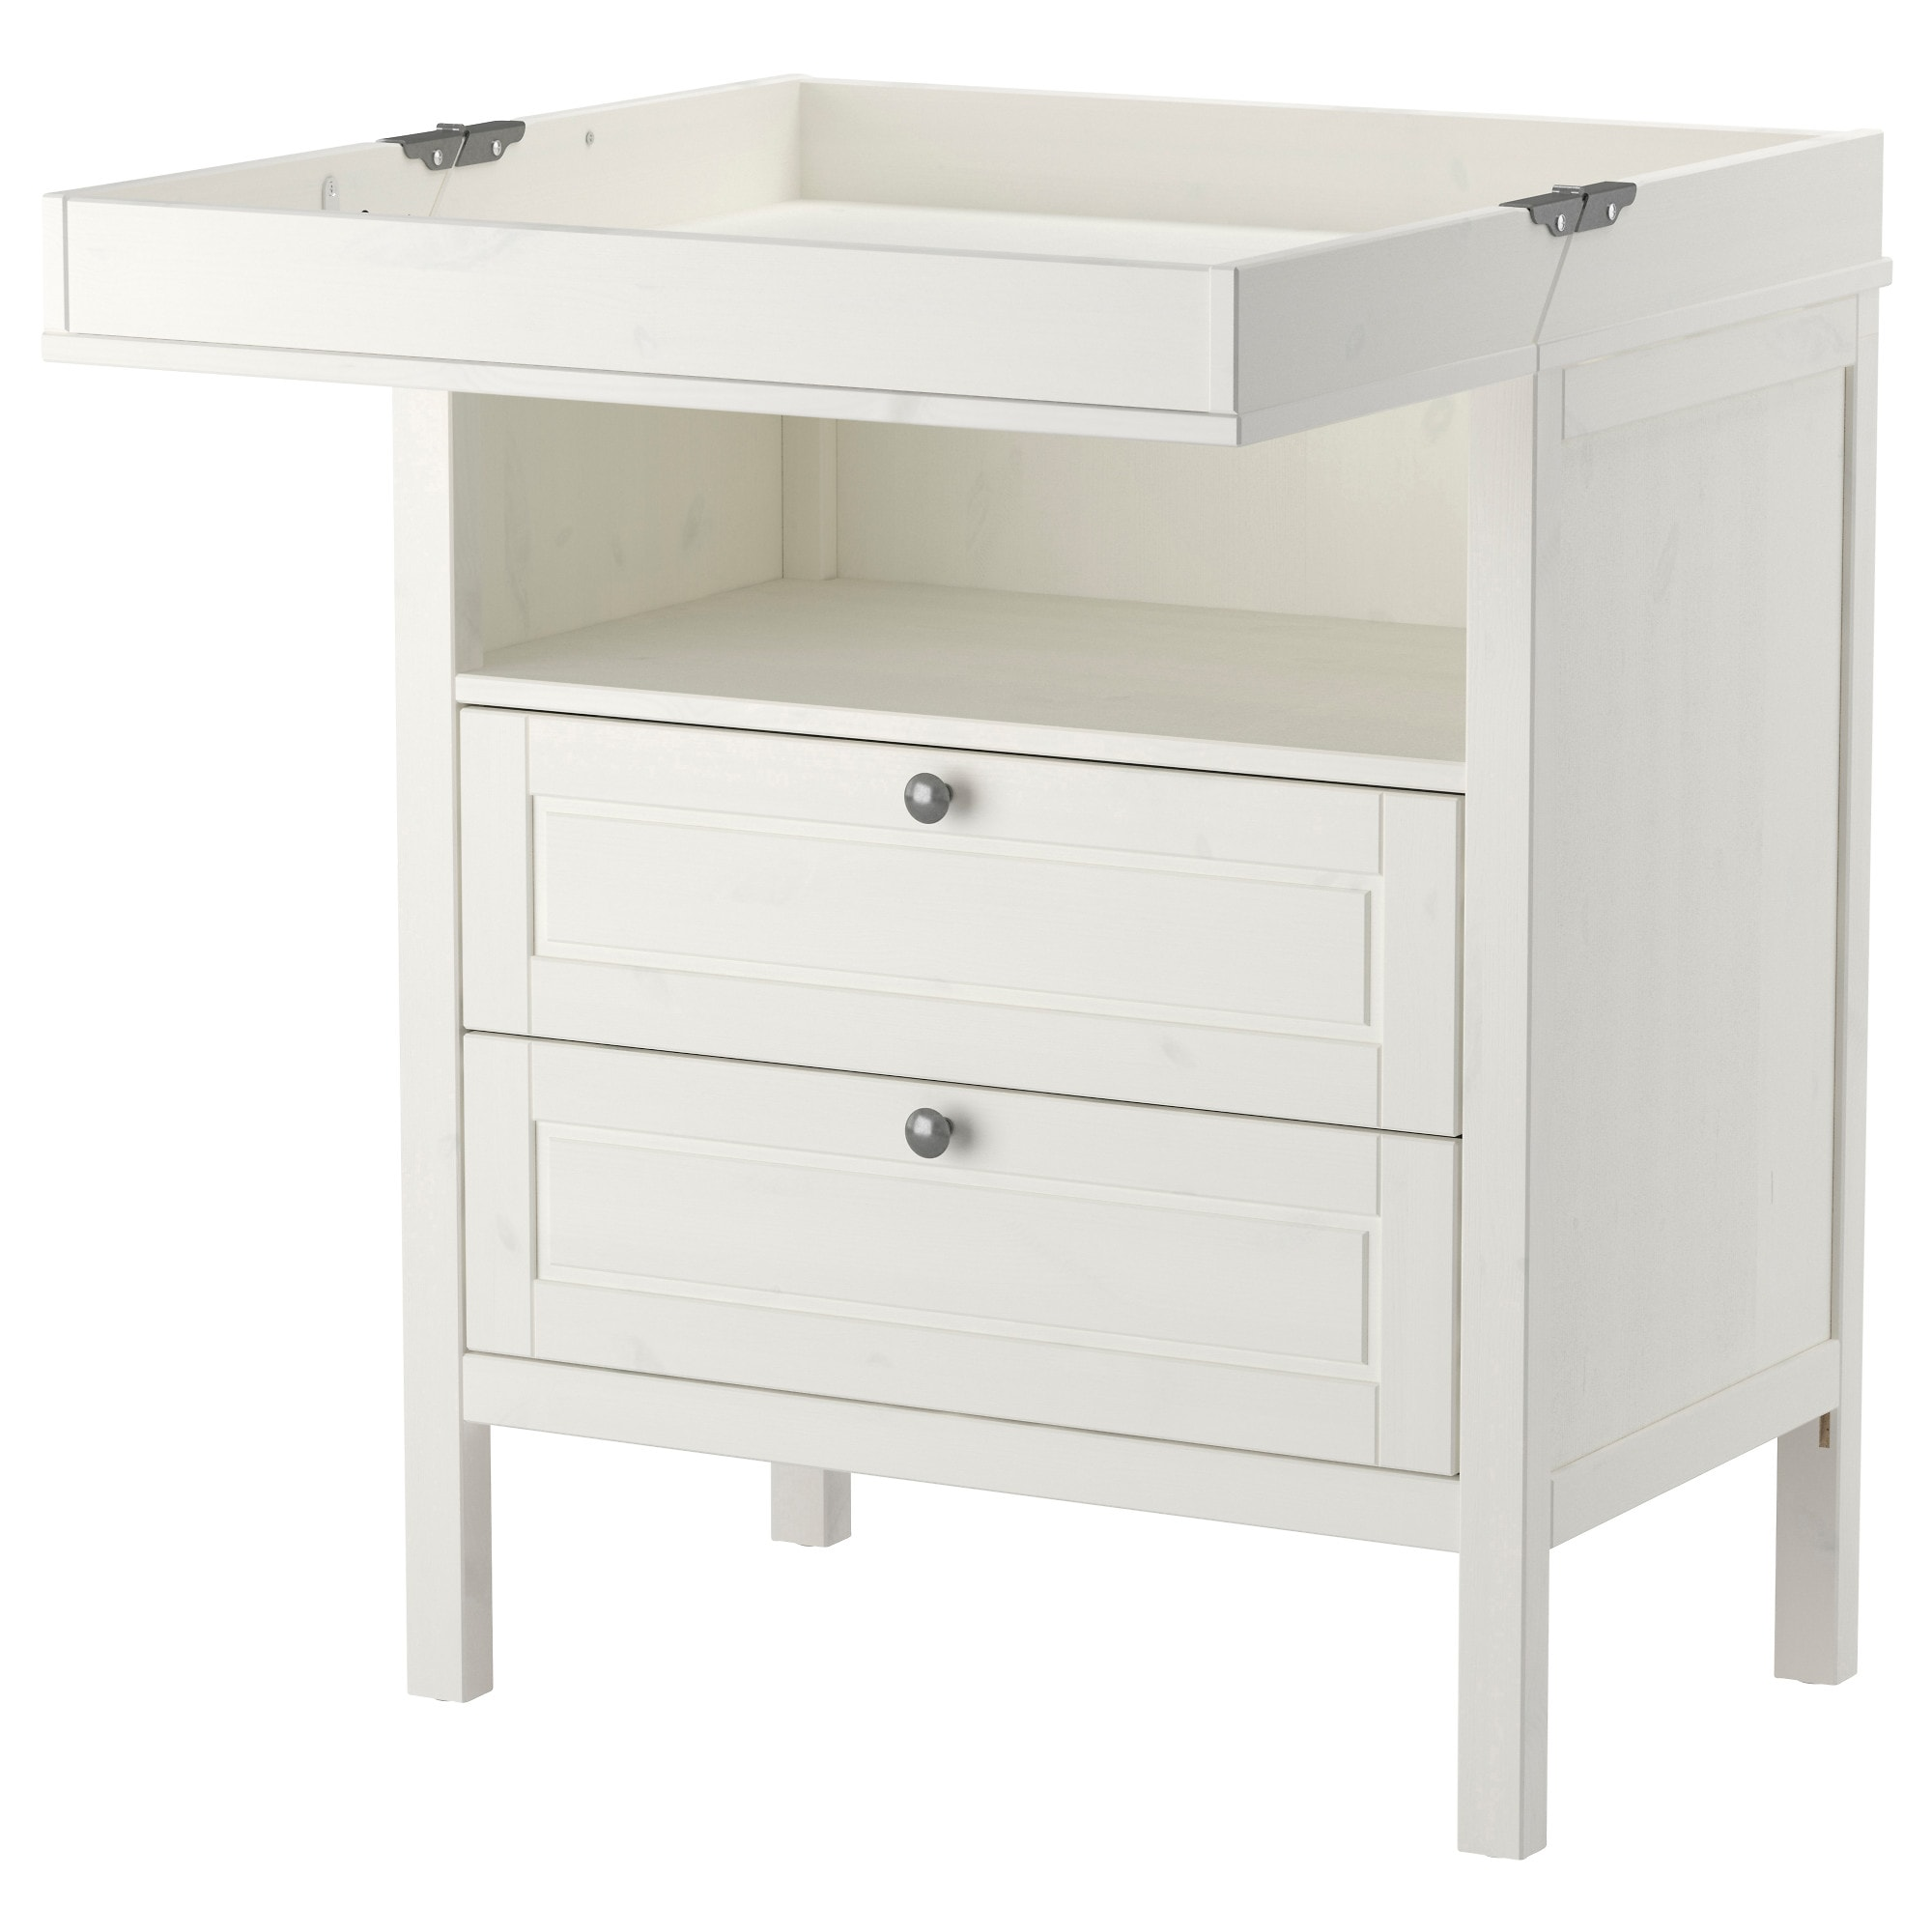 SUNDVIK Changing Tablechest IKEA - Ikea chest of drawers